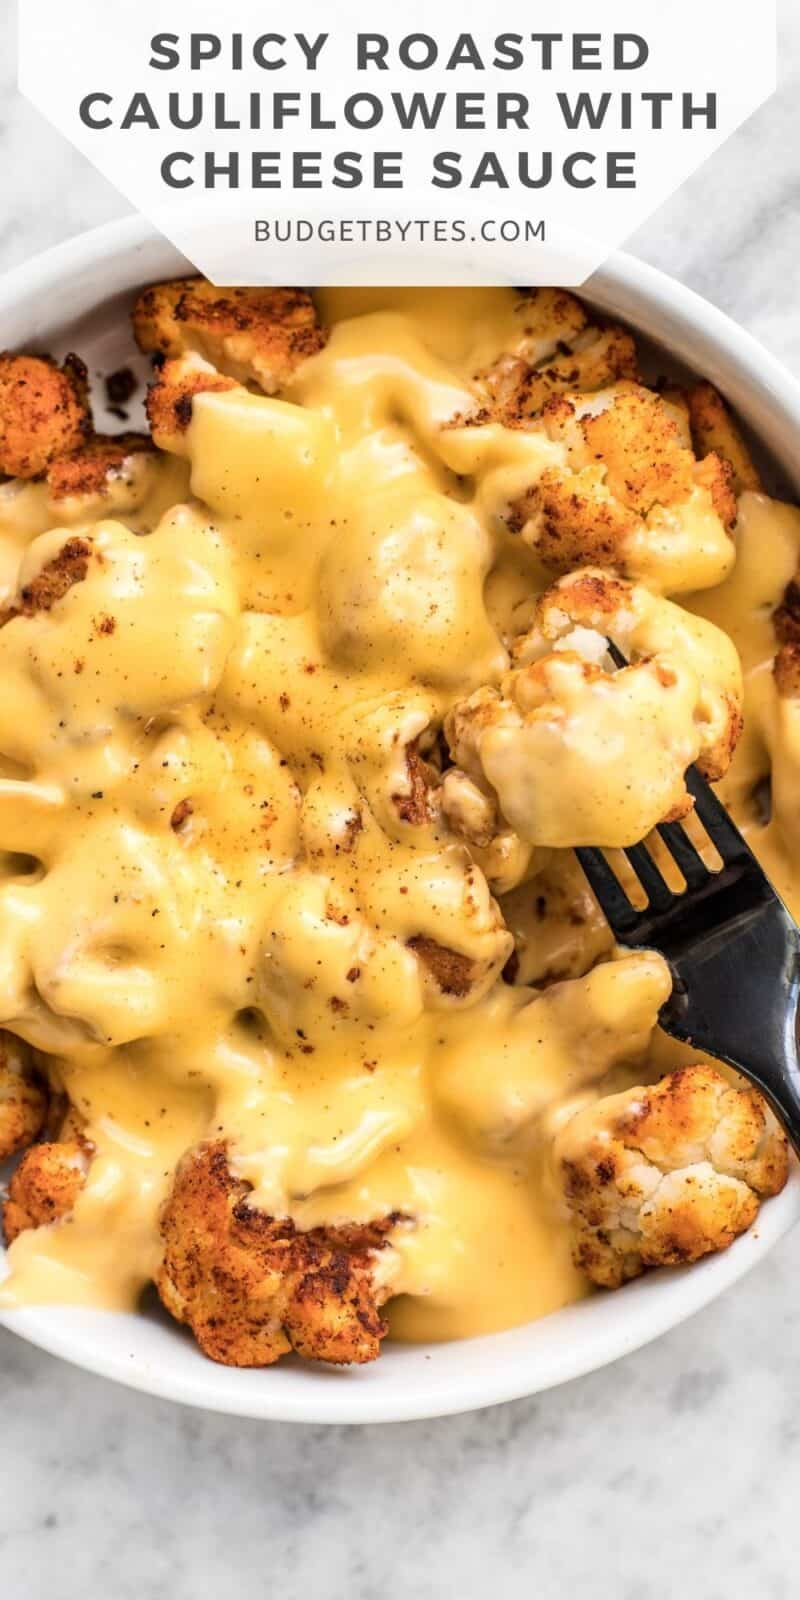 close up of a bowl of roasted cauliflower covered in cheese sauce, title text at the top